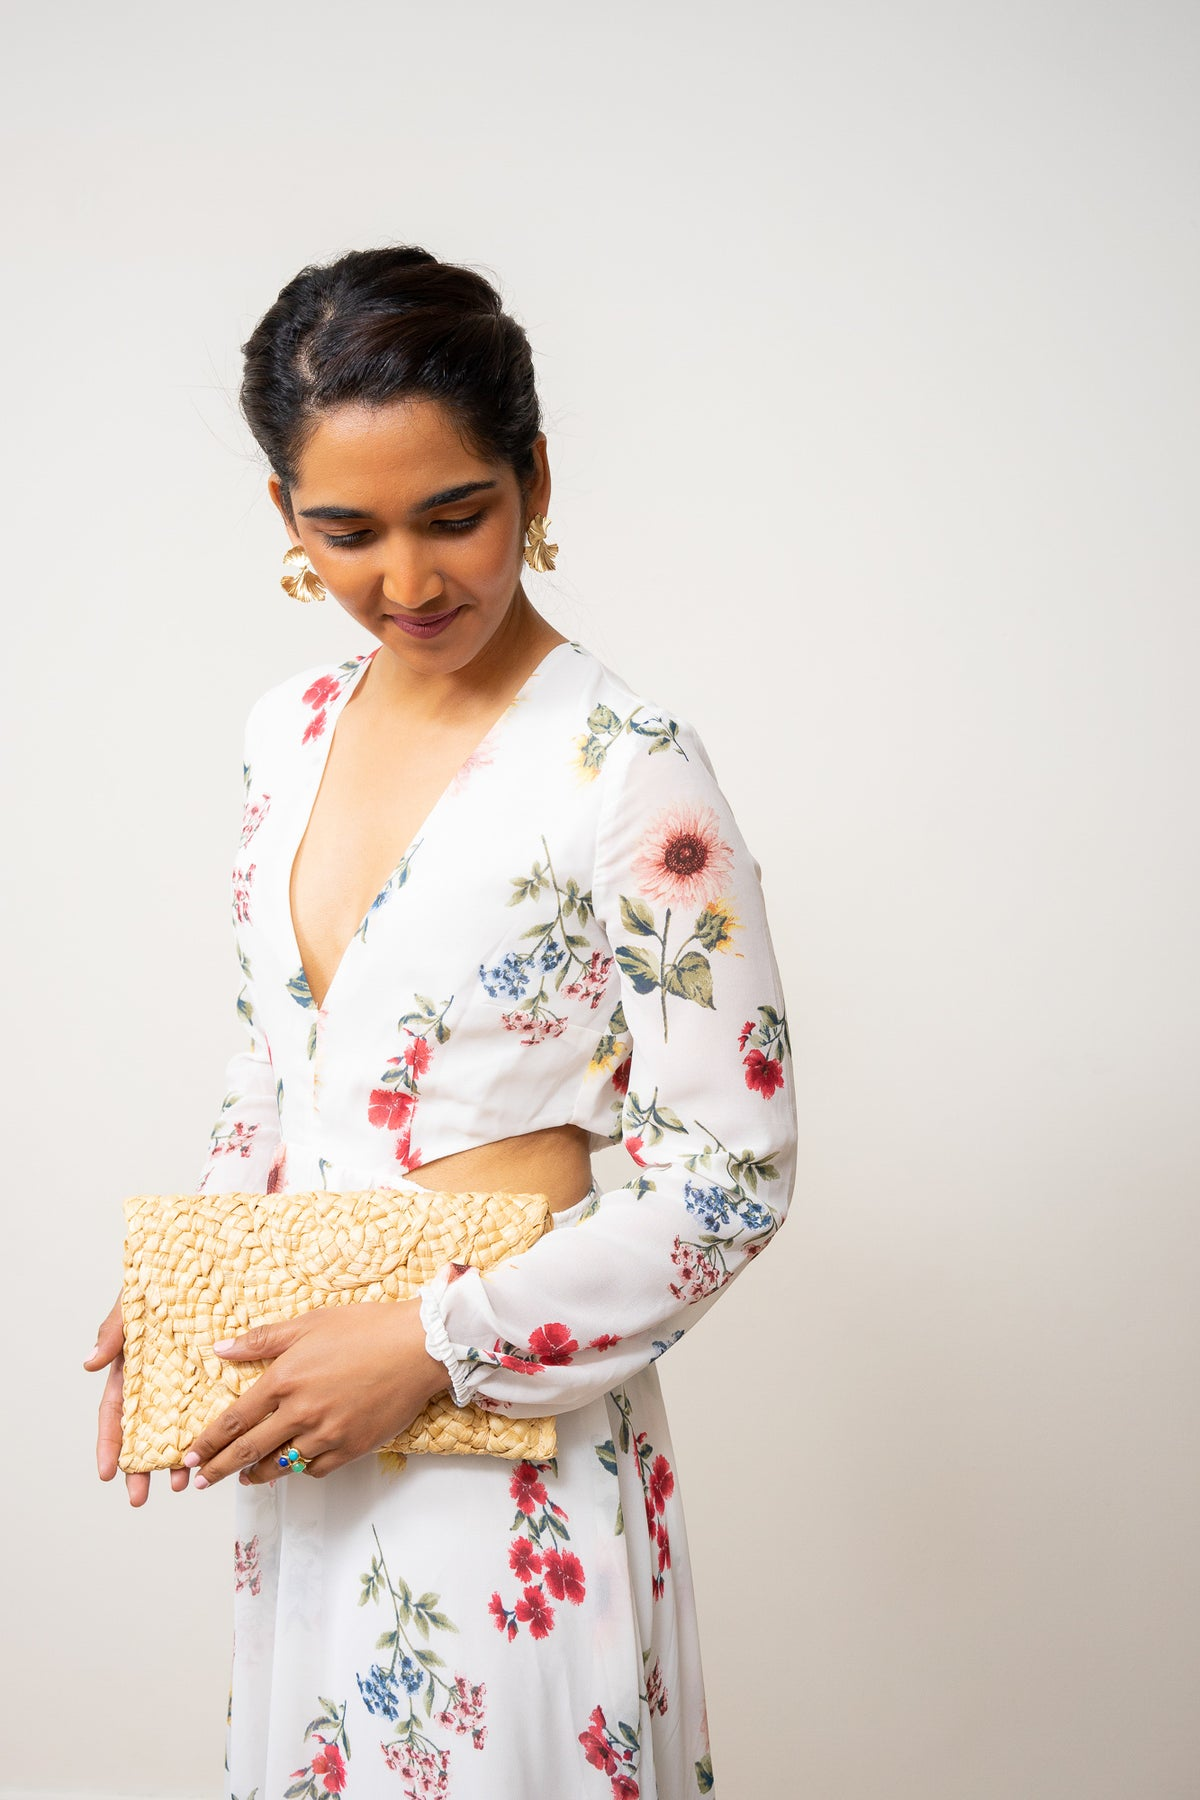 straw clutch purse held by model